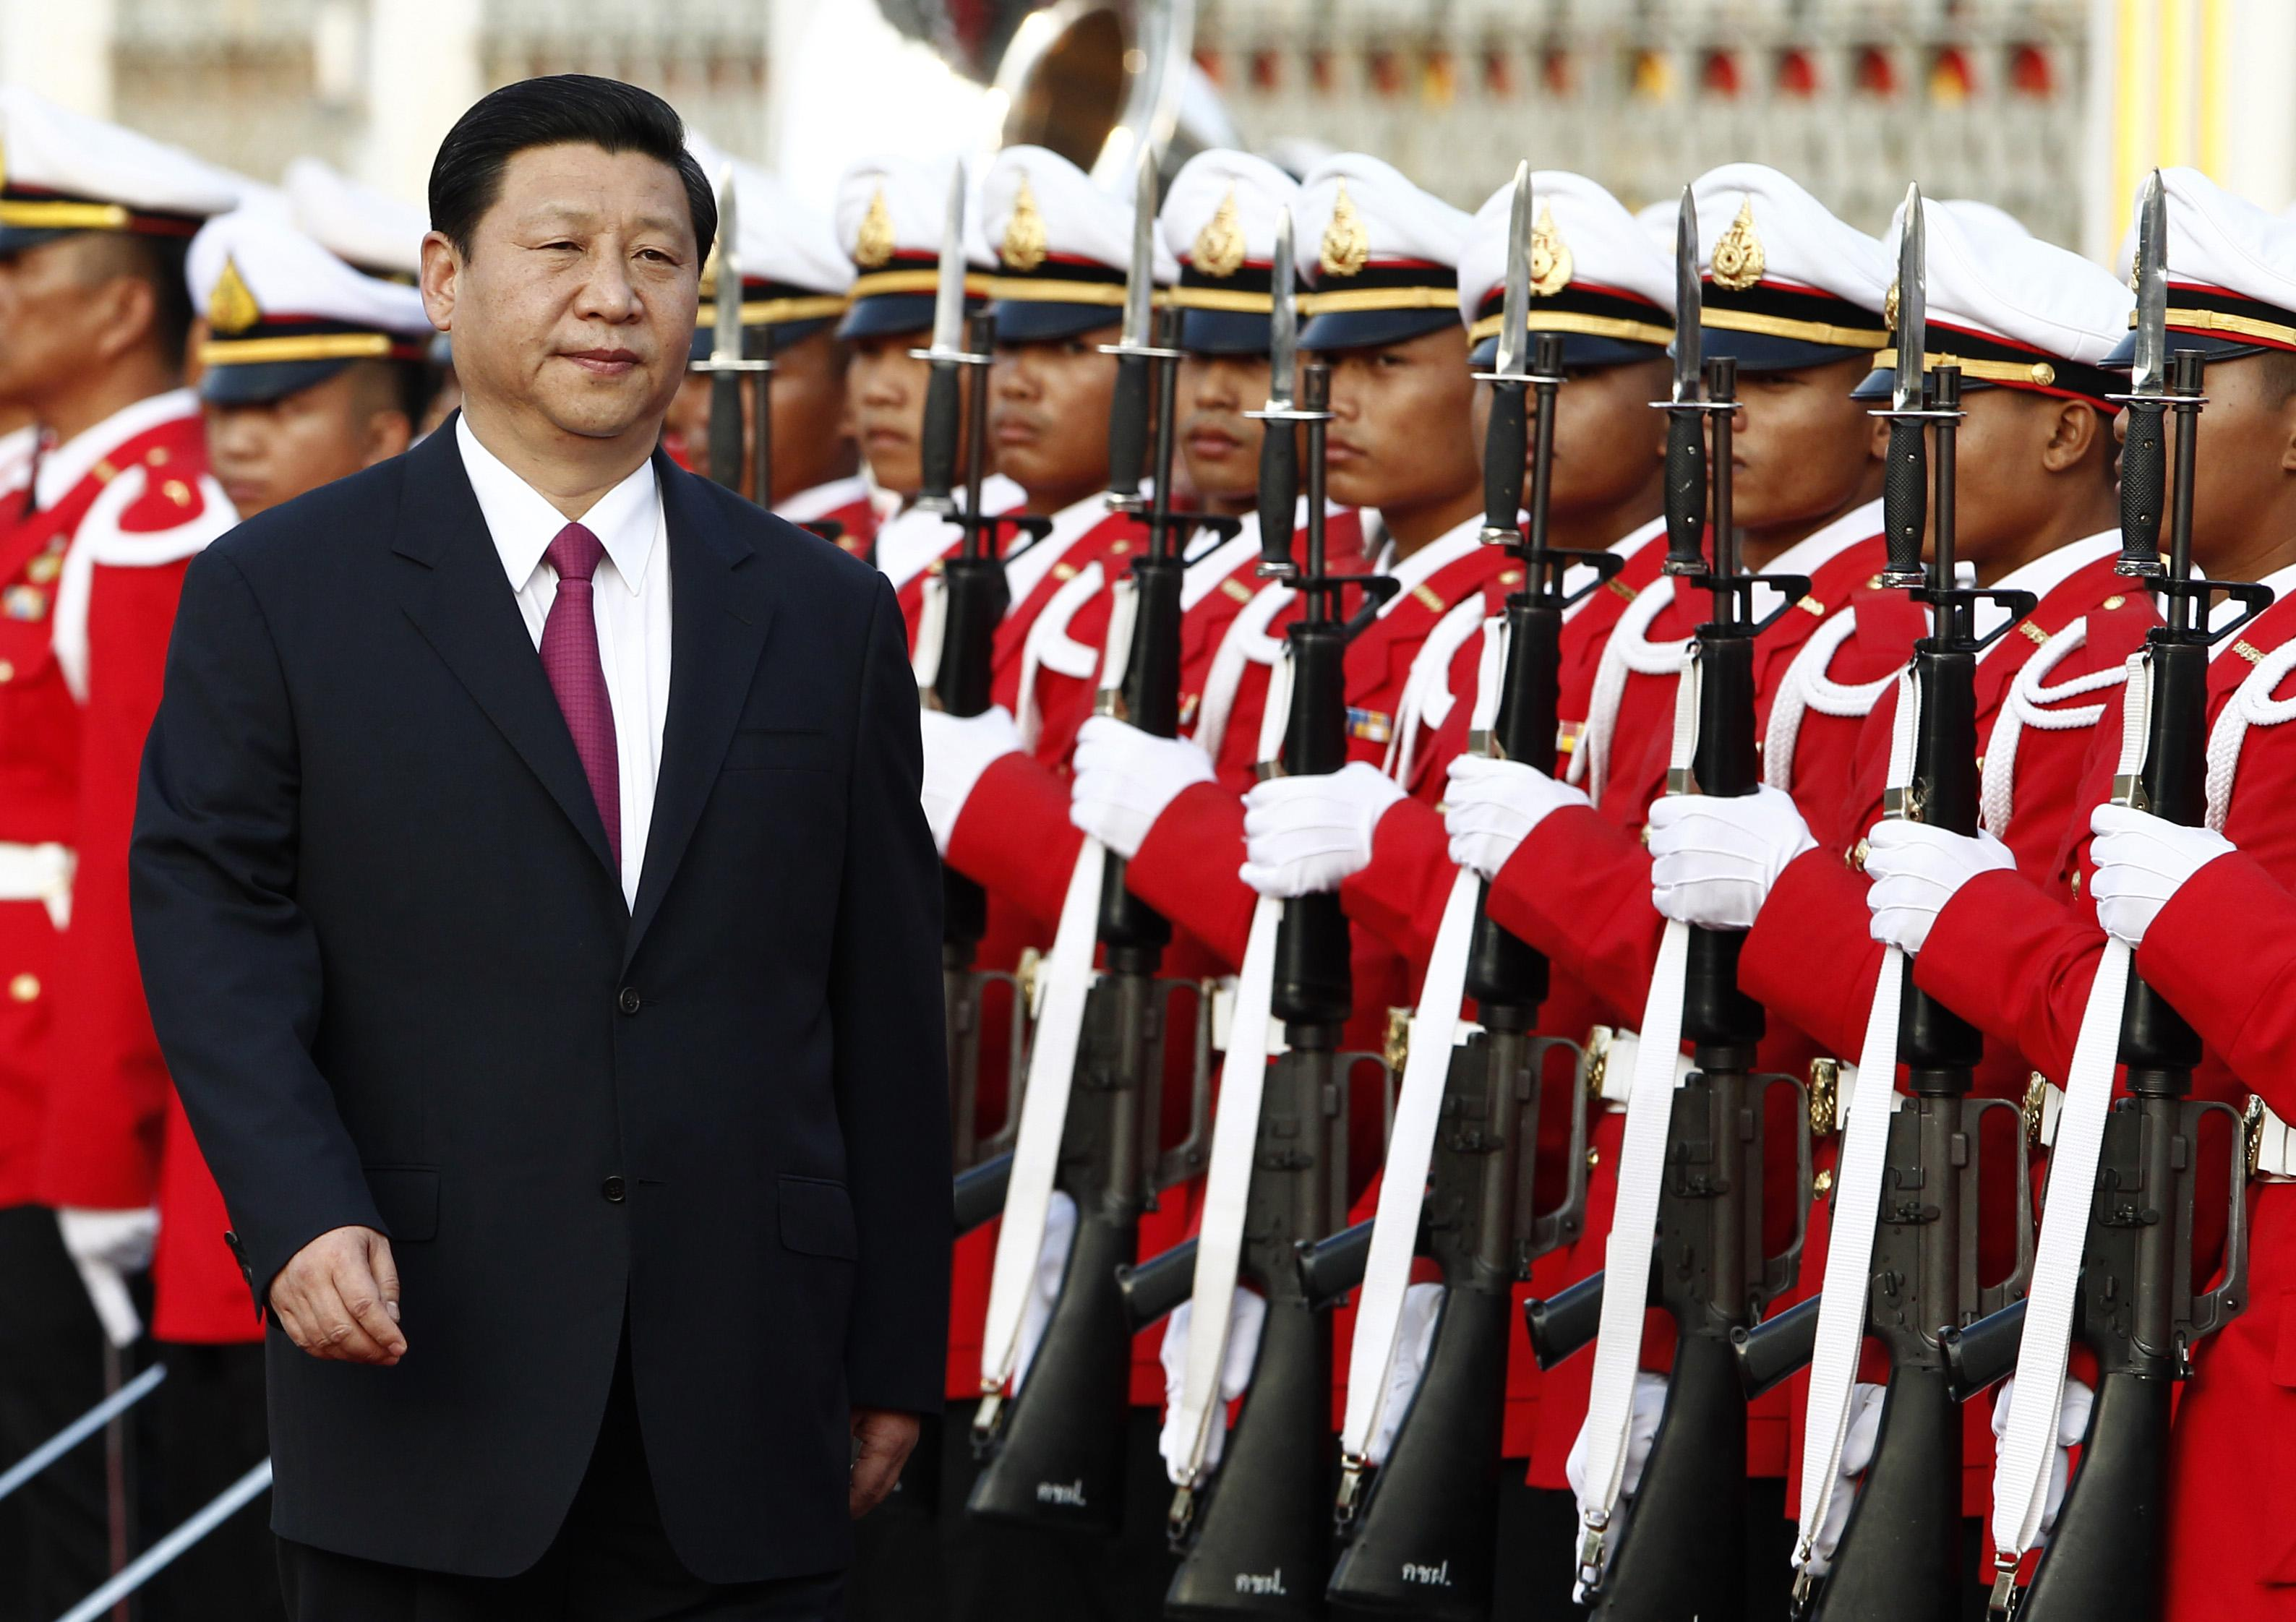 Xi Jinping upcoming visit